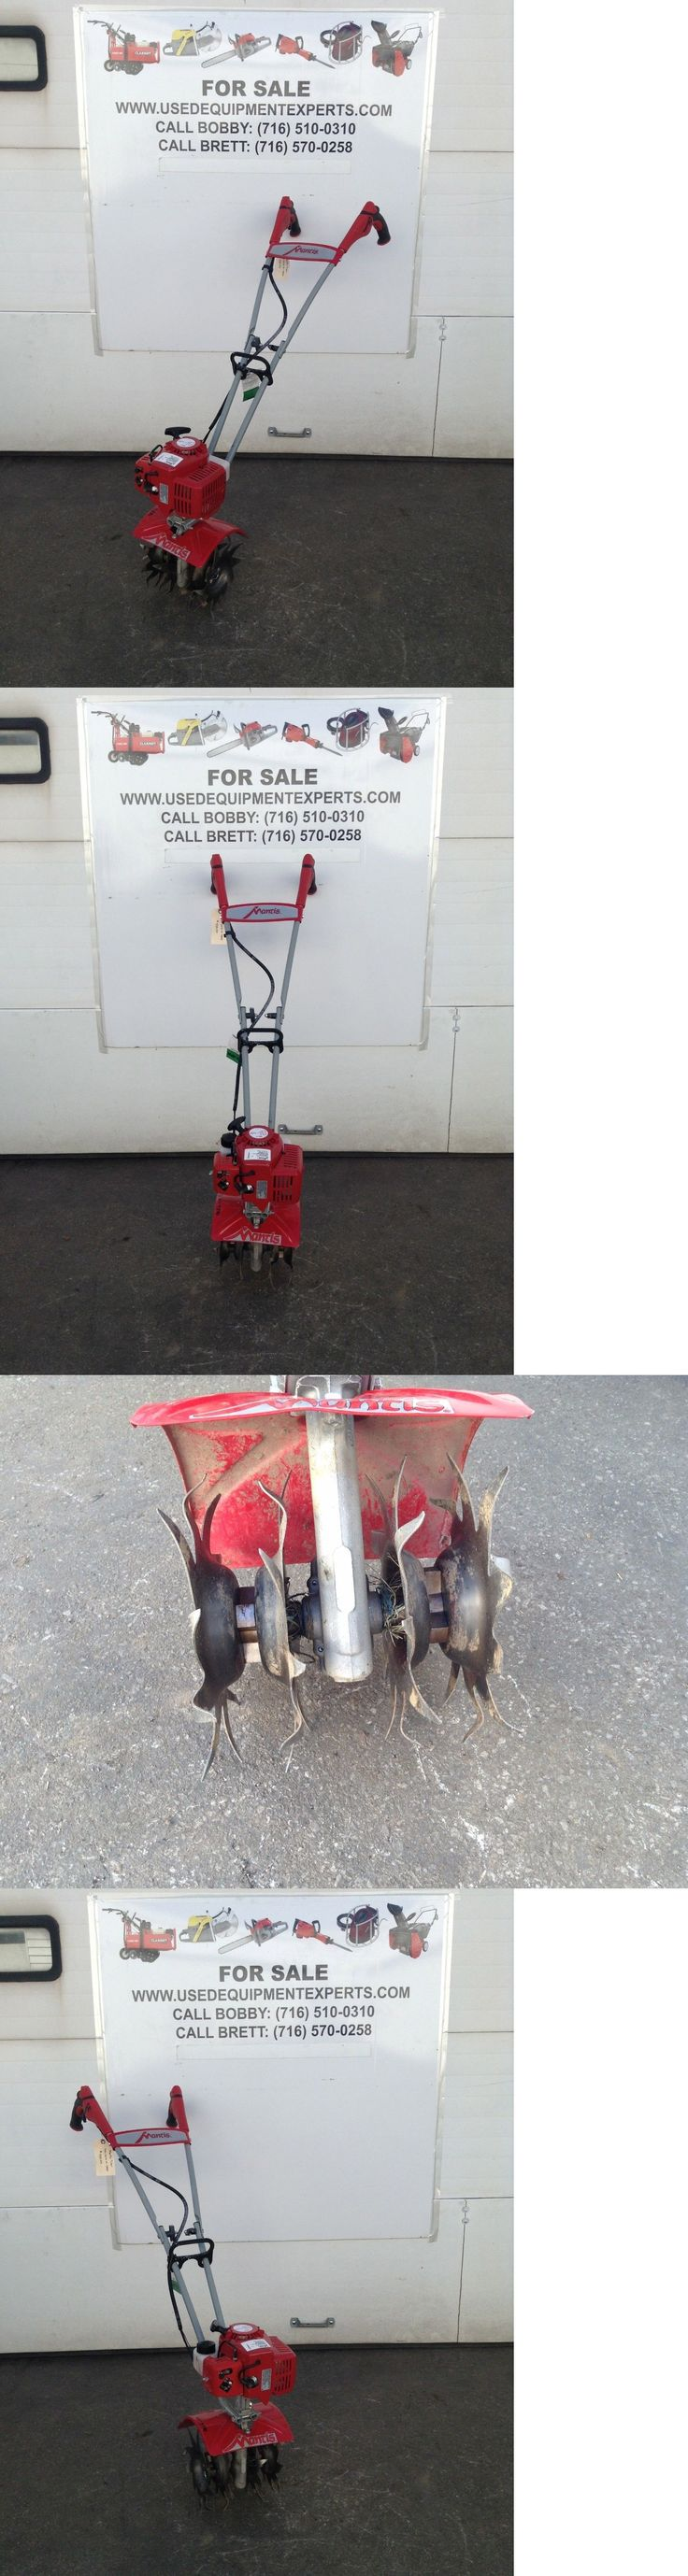 tillers mantis mini rotary tiller lawn small garden cultivator power cultivate soil